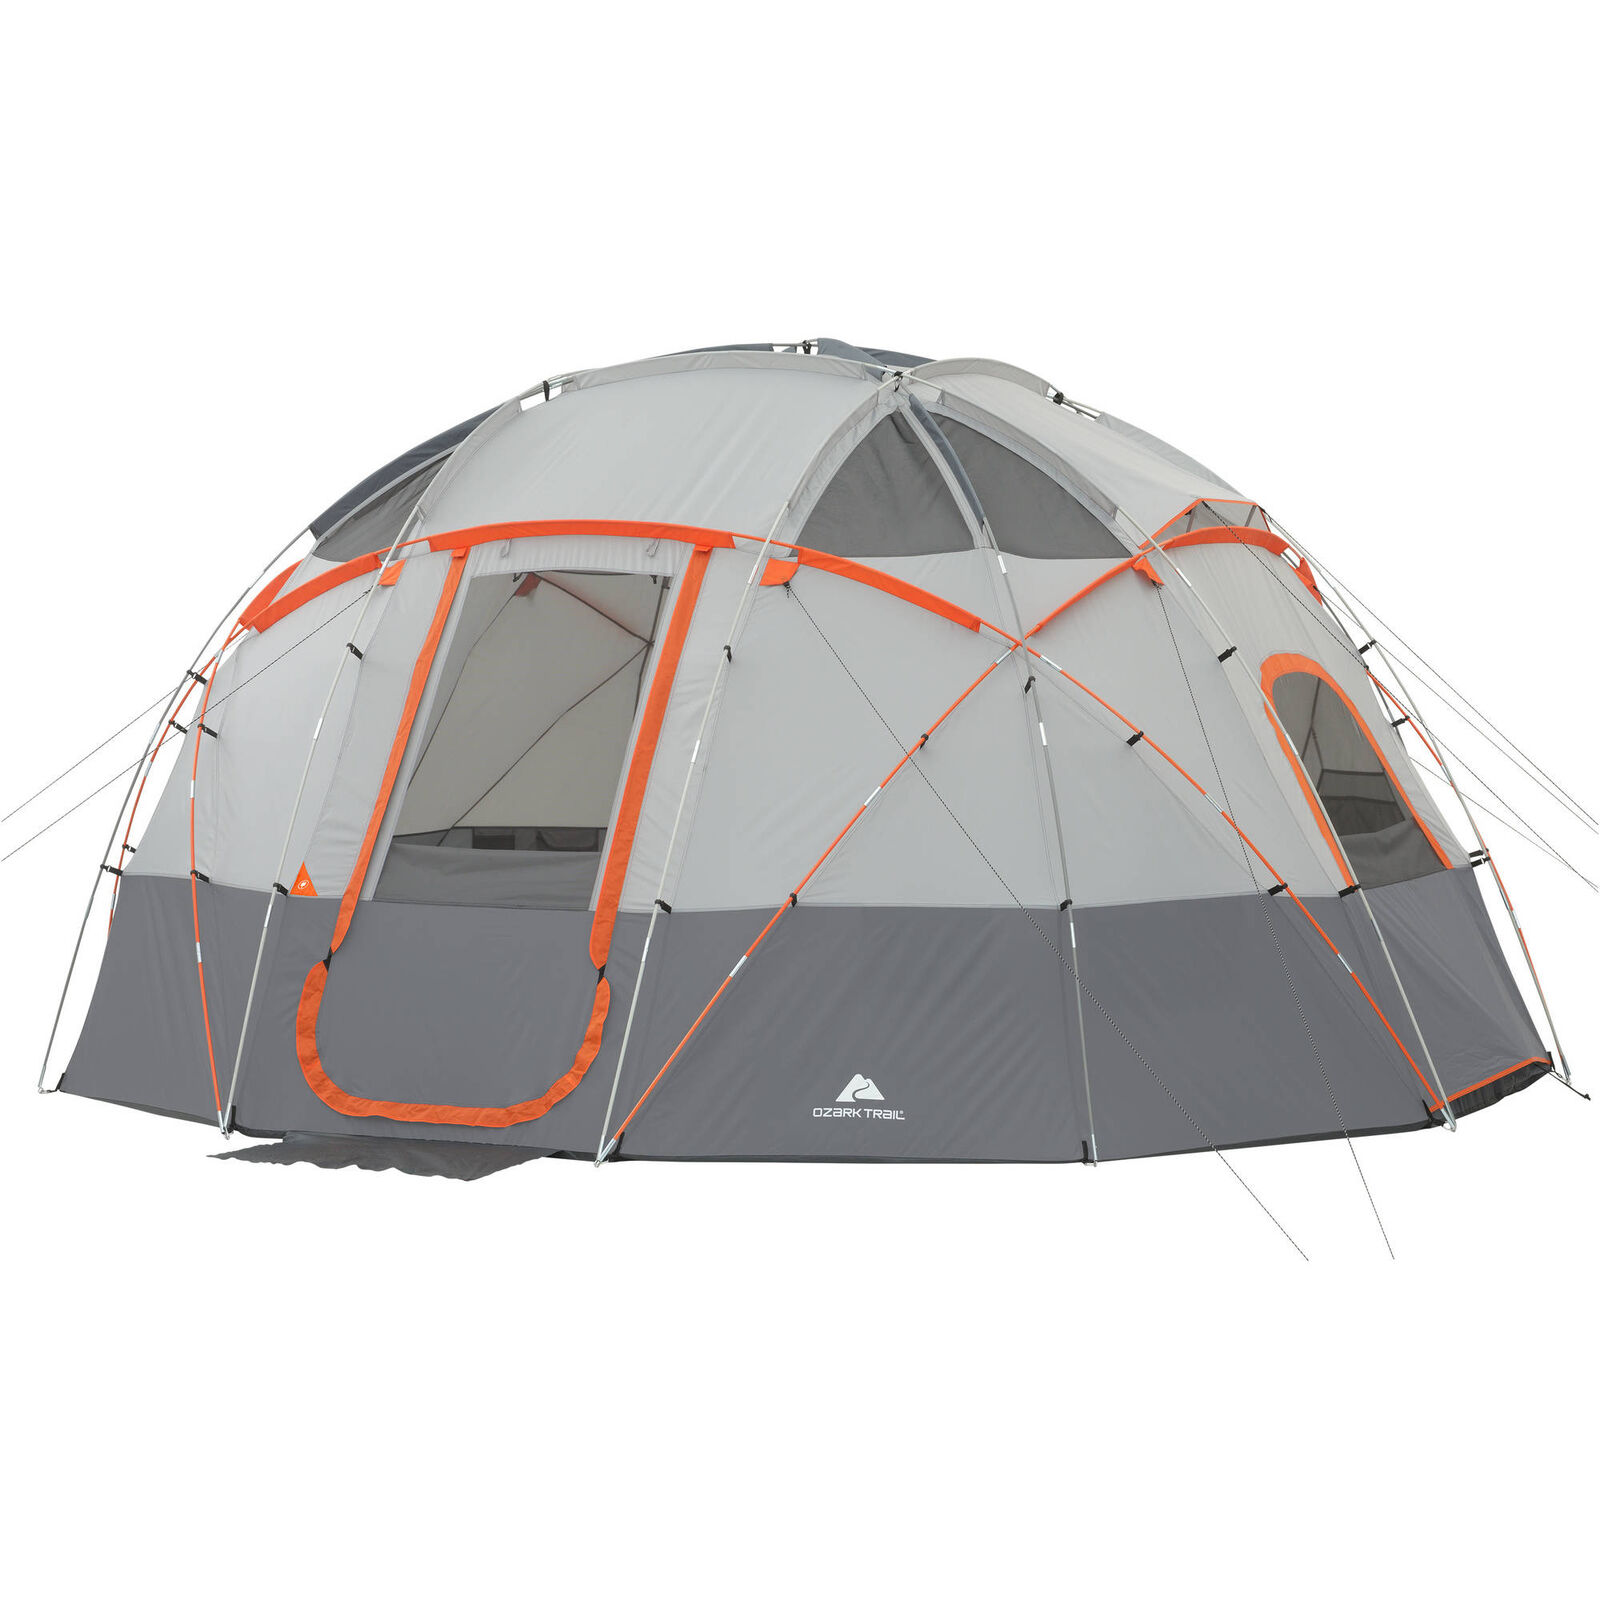 Camping Tent Shelter Home Family Camp Sleep 16'x16' Sphere Sleeps 12 Dome Round